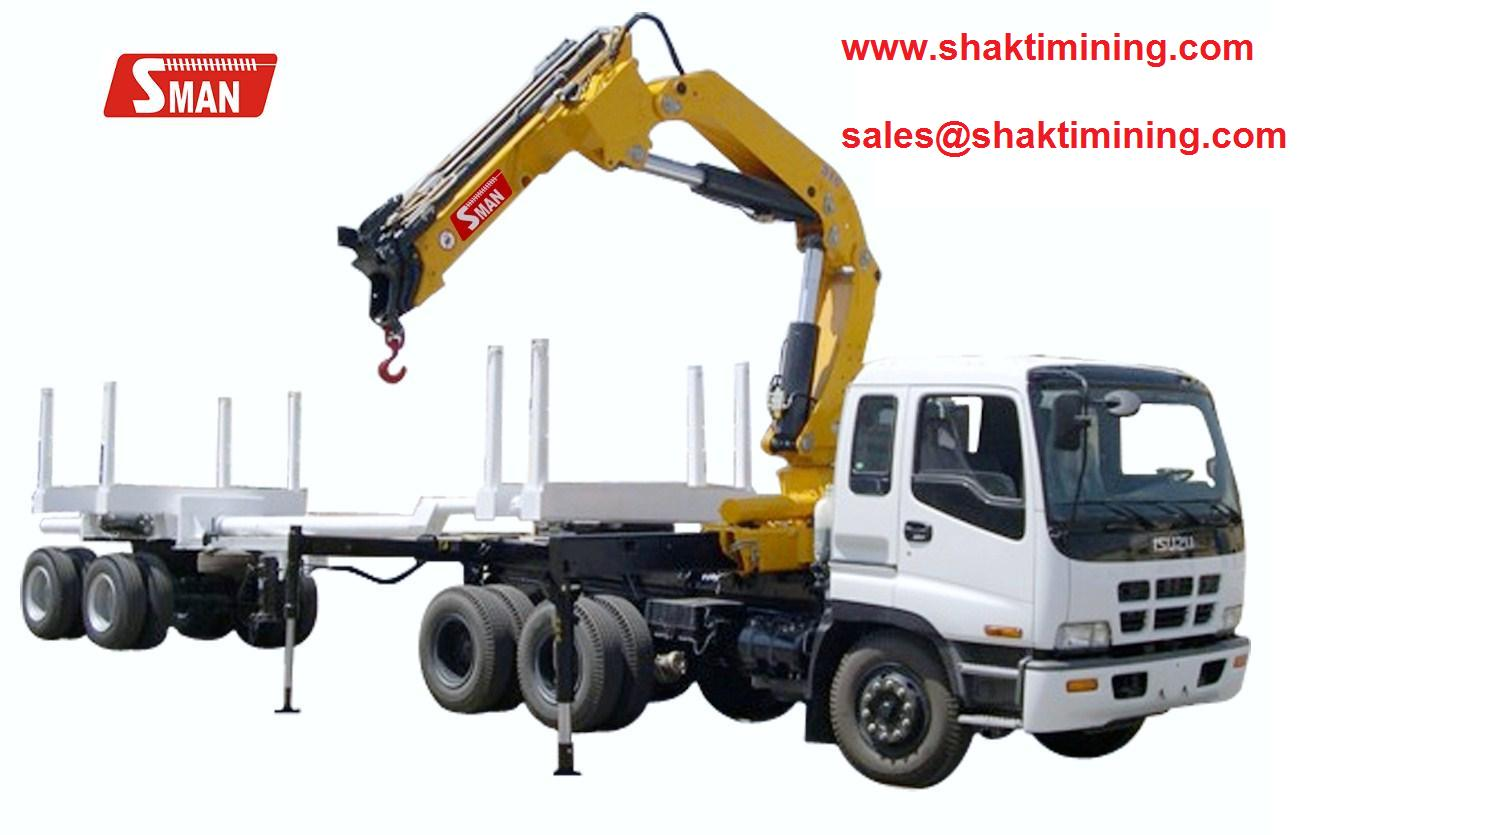 Knuckle Boom Crane Photo Detailed About Truck Mounted Knuckle Boom